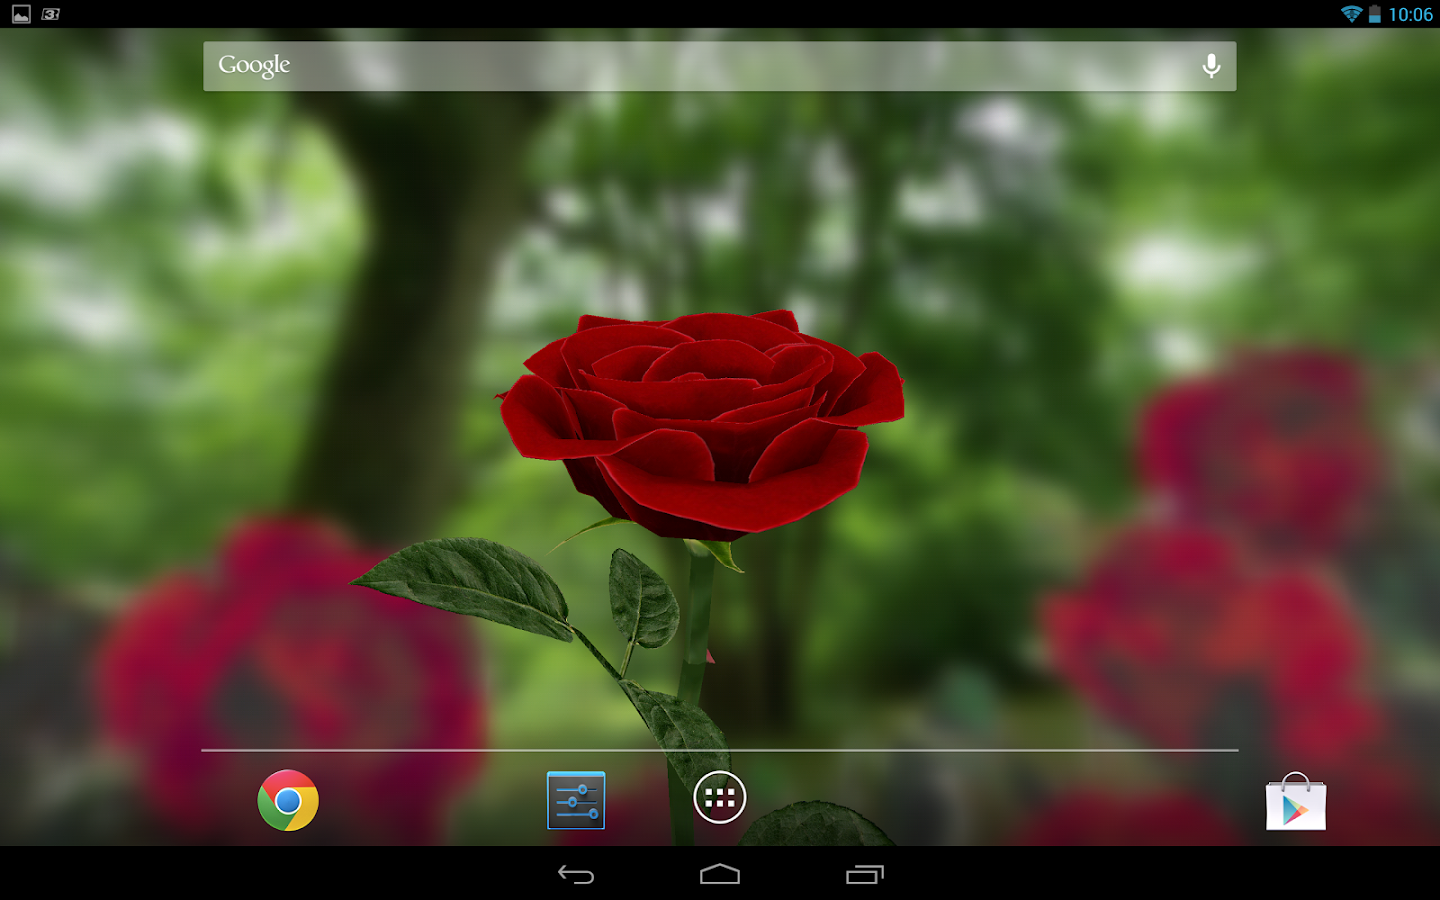 Hd for desktop nice rose mobile wallpapers 3d rose wallpaper free - 3d Rose Live Wallpaper Free Screenshot